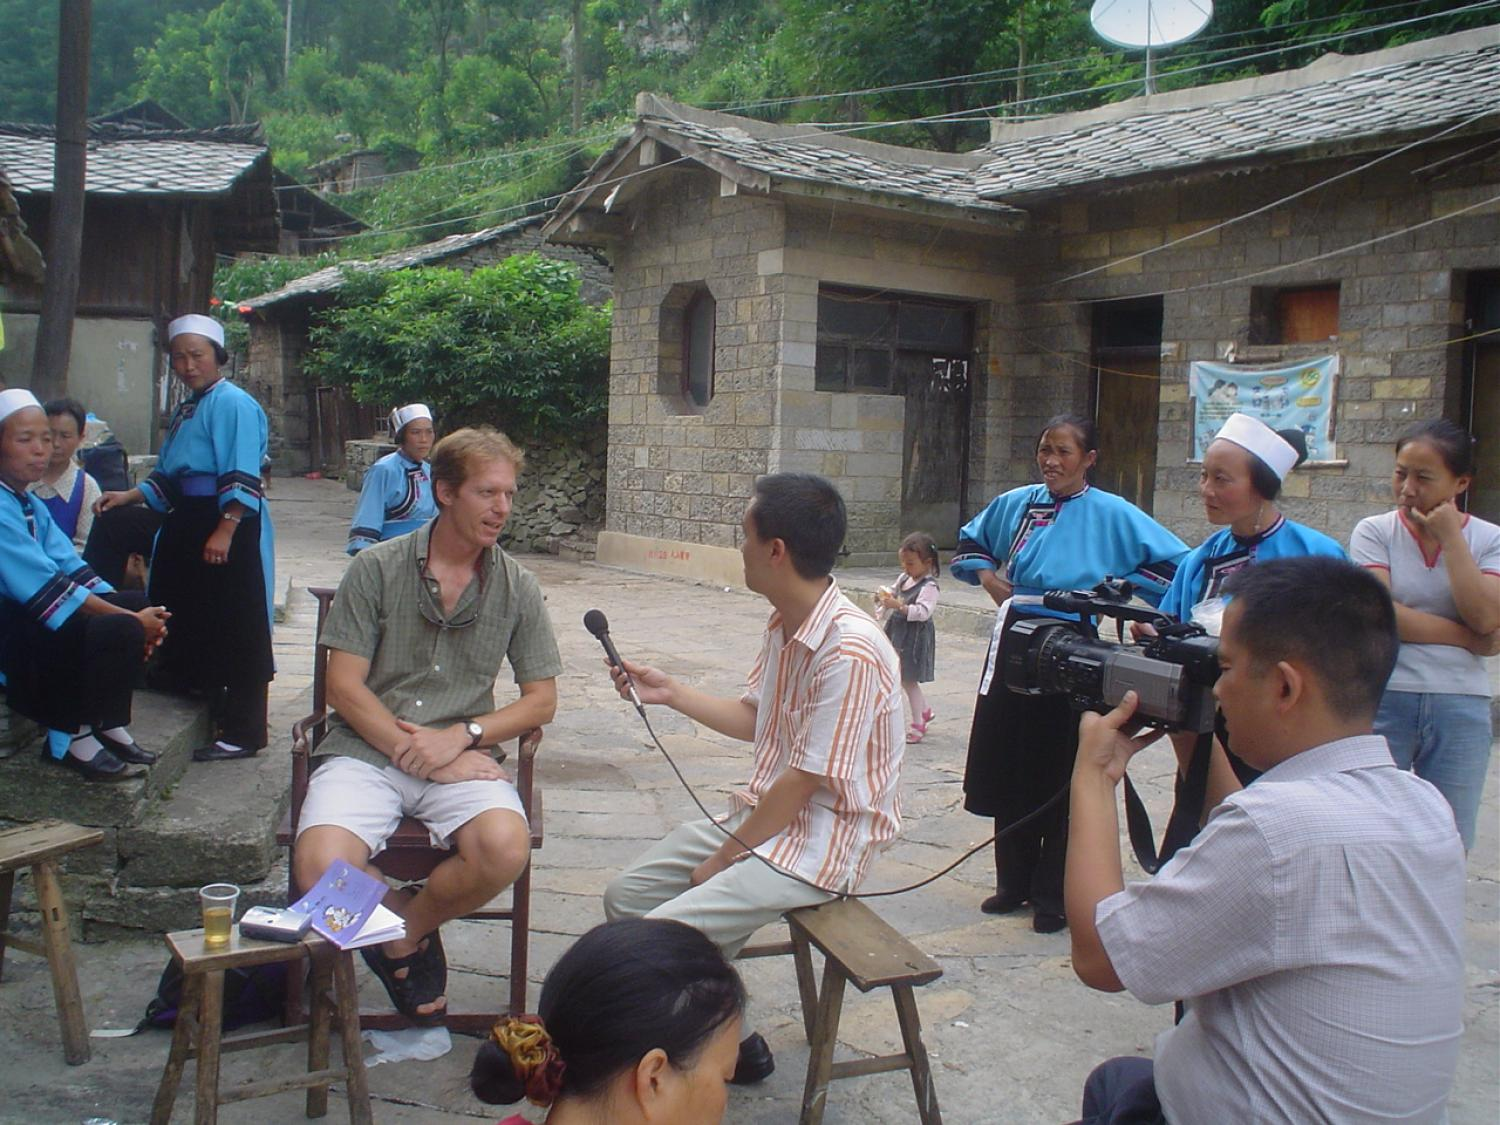 Seated caucasian man in Chinese village next to TV interviewer and camera crew with villagers observing